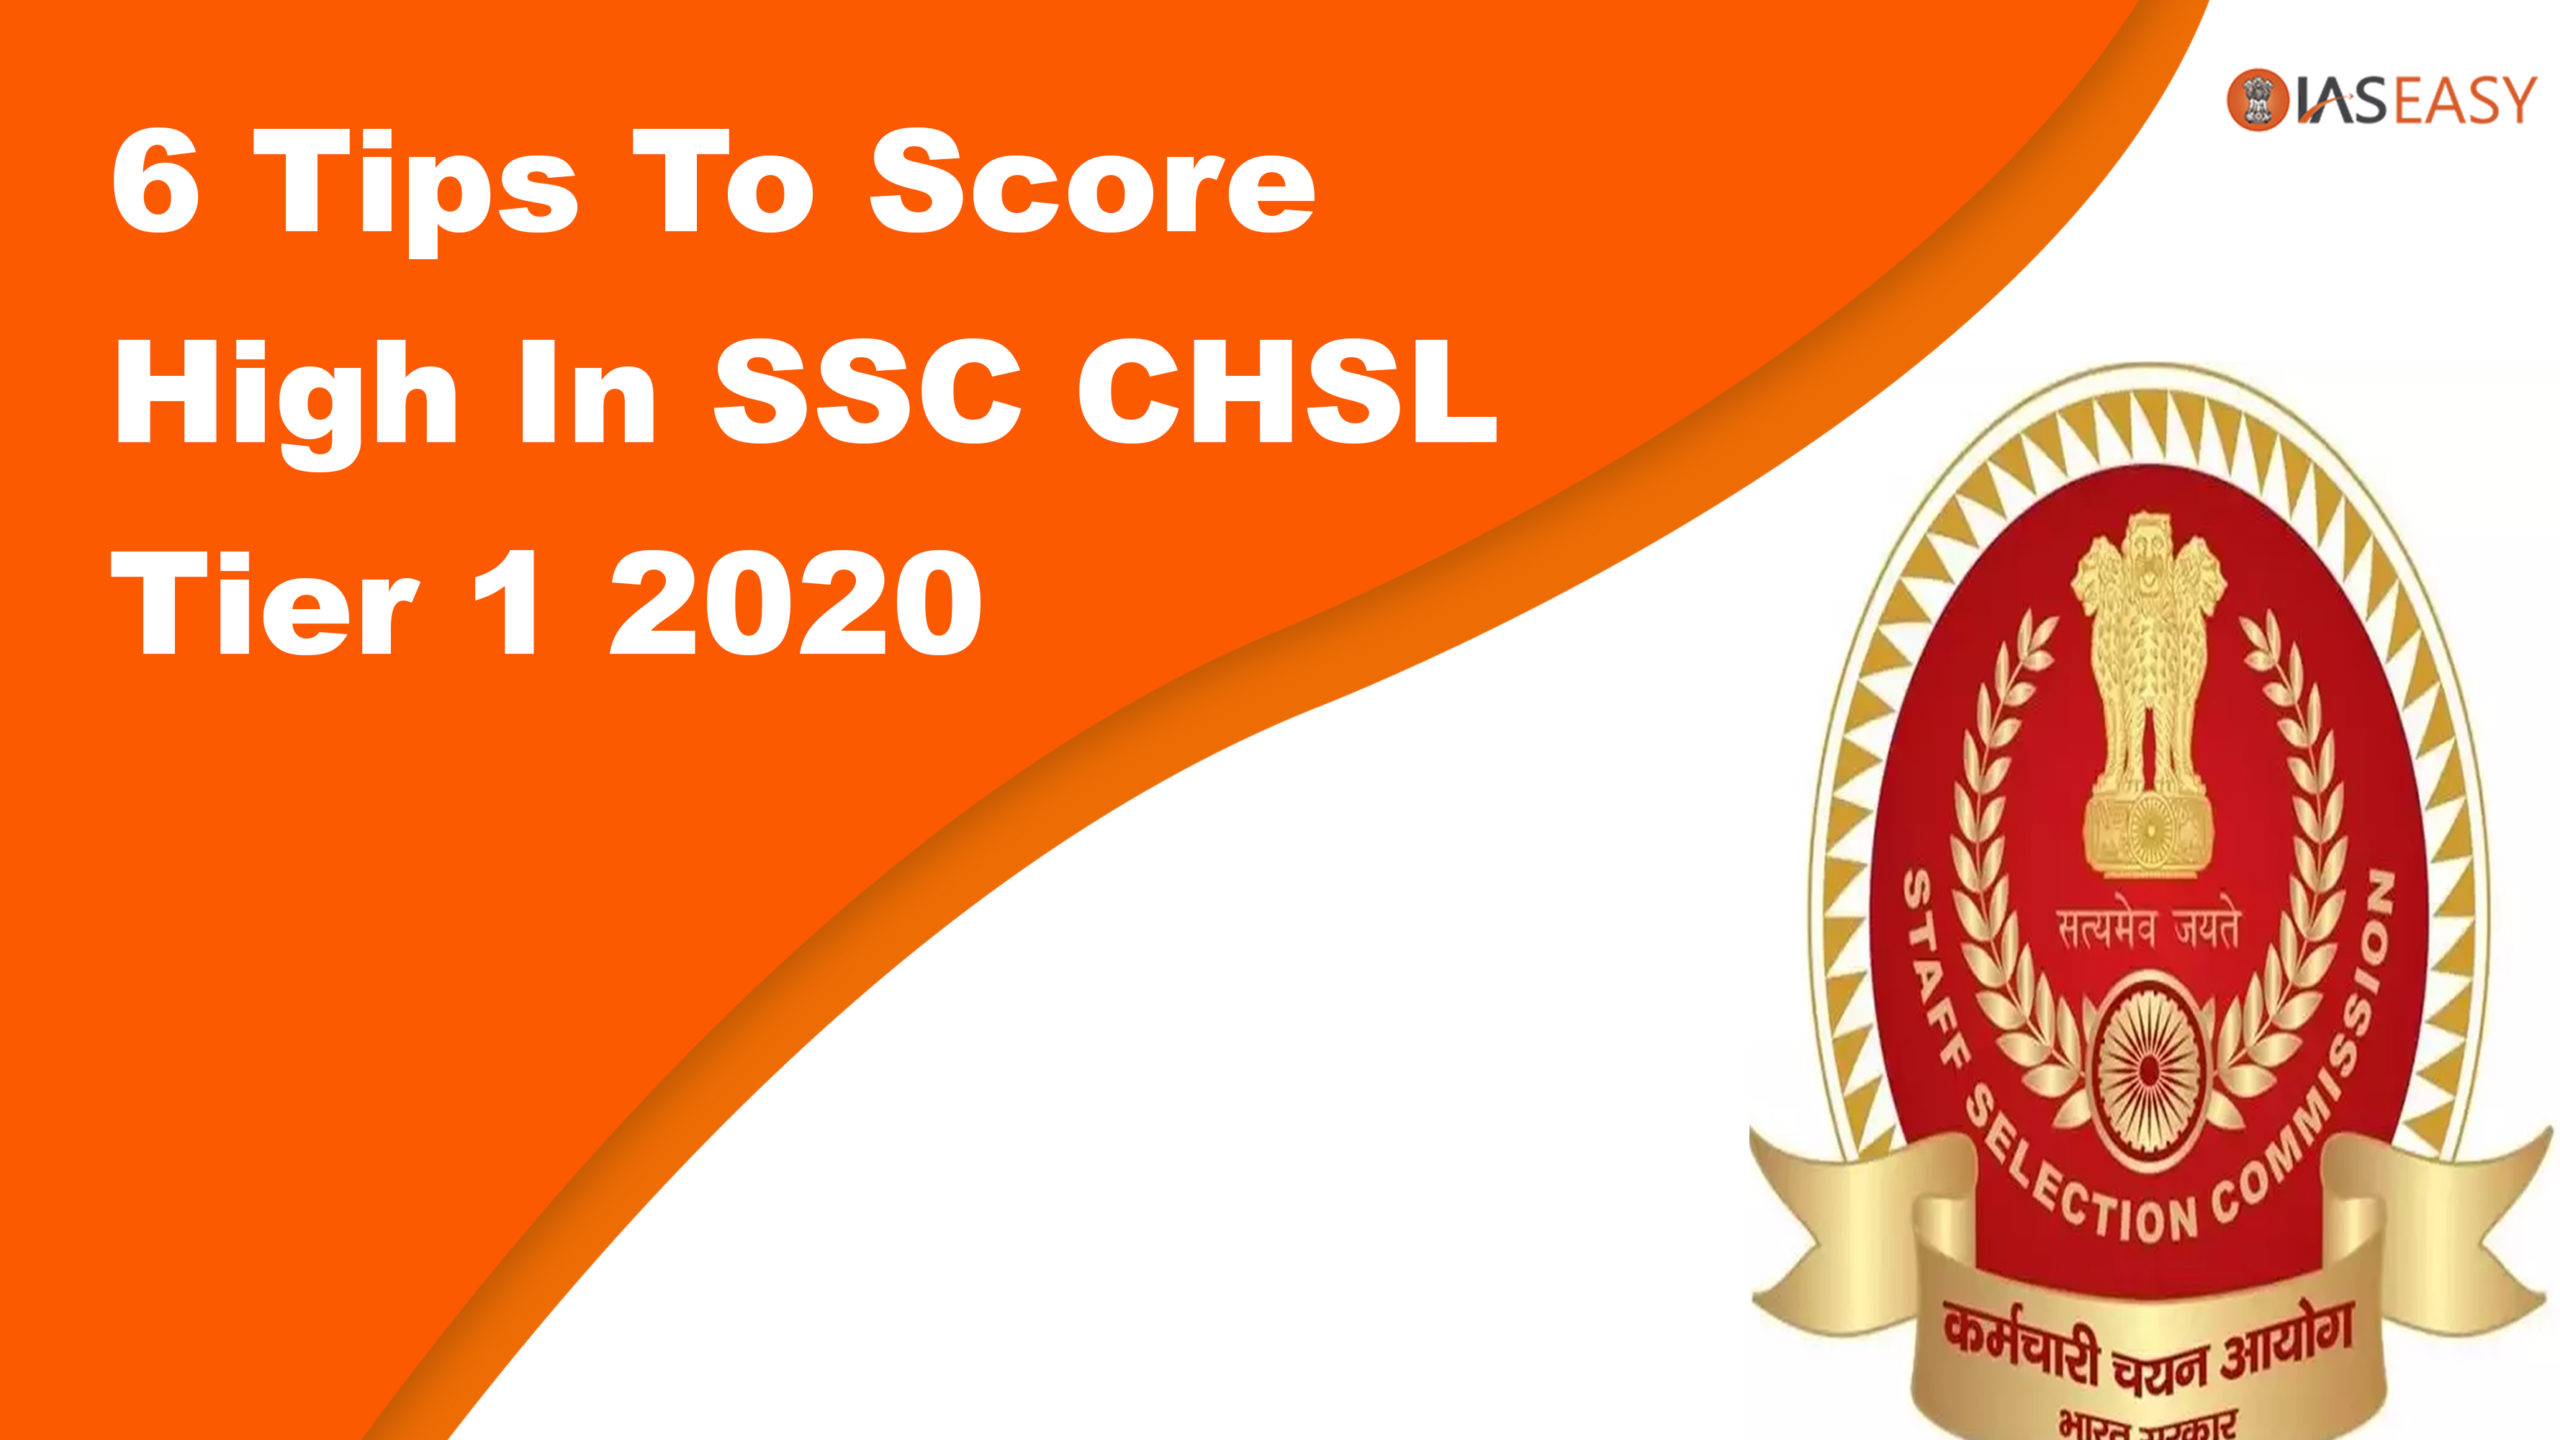 6 Tips To Score High In SSC CHSL Tier 1 2020